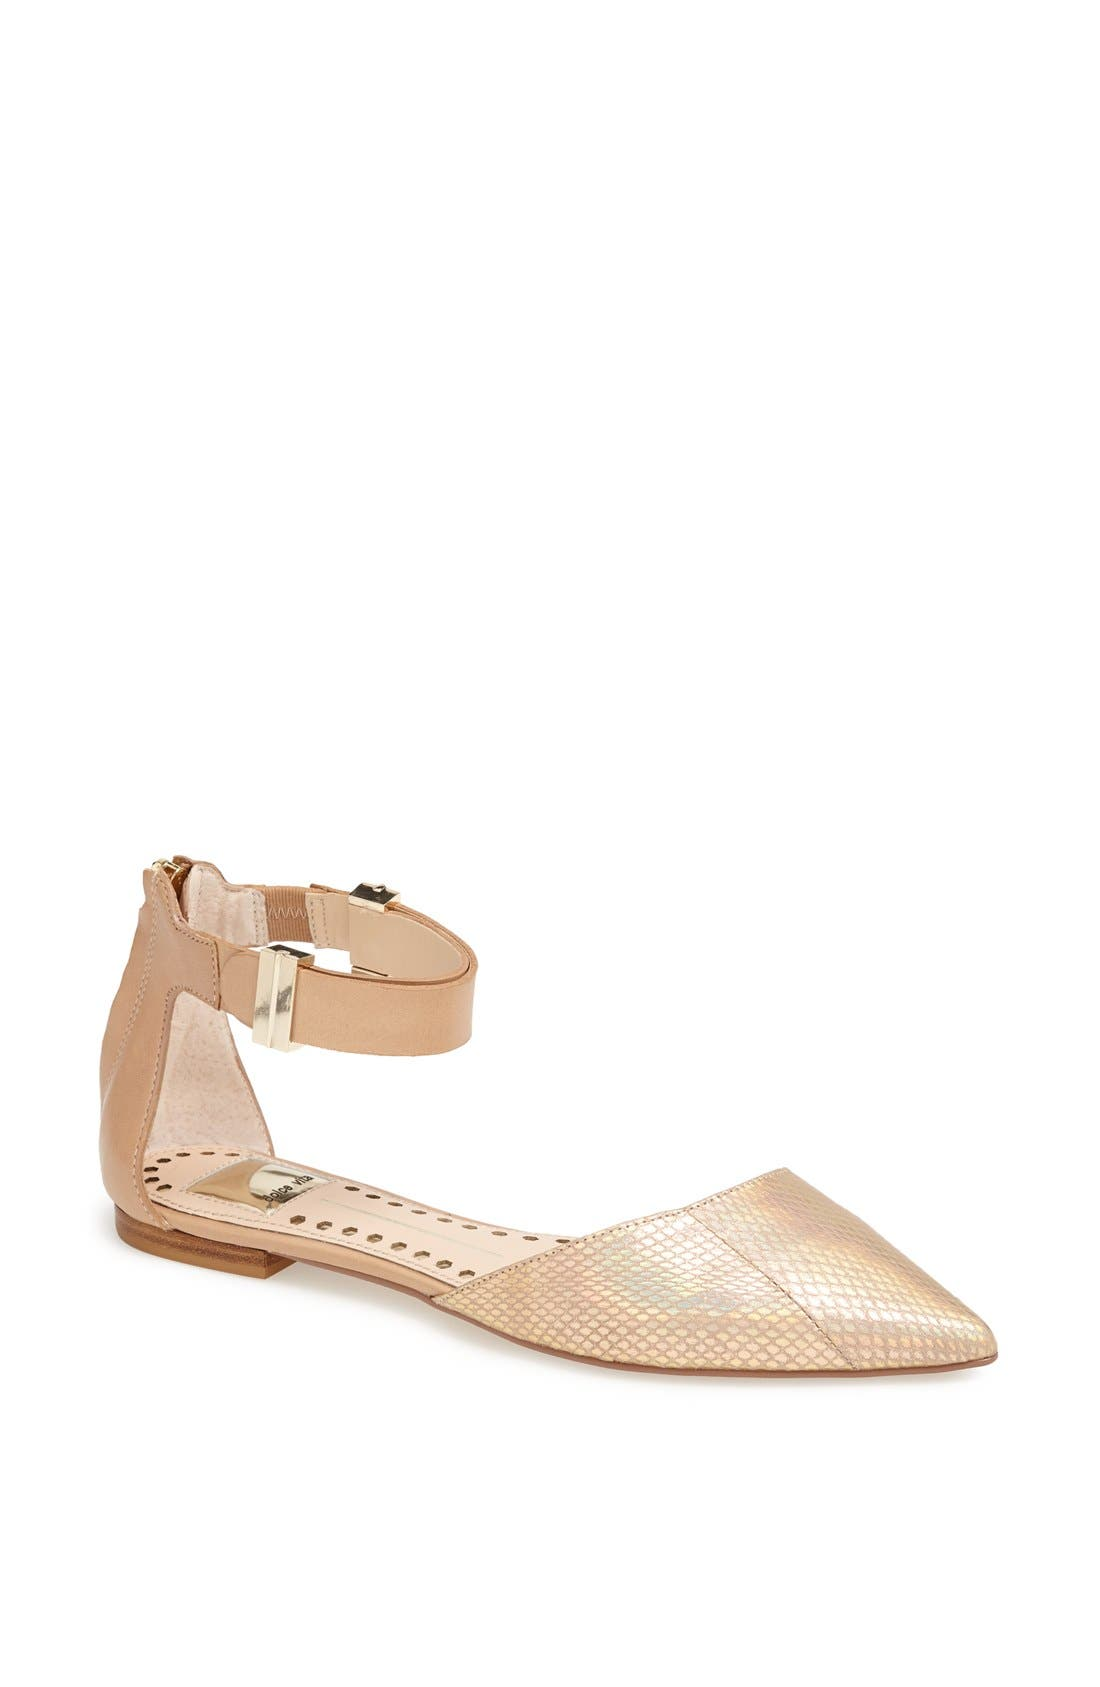 Alternate Image 1 Selected - Dolce Vita 'Agusta' Ankle Strap d'Orsay Flat